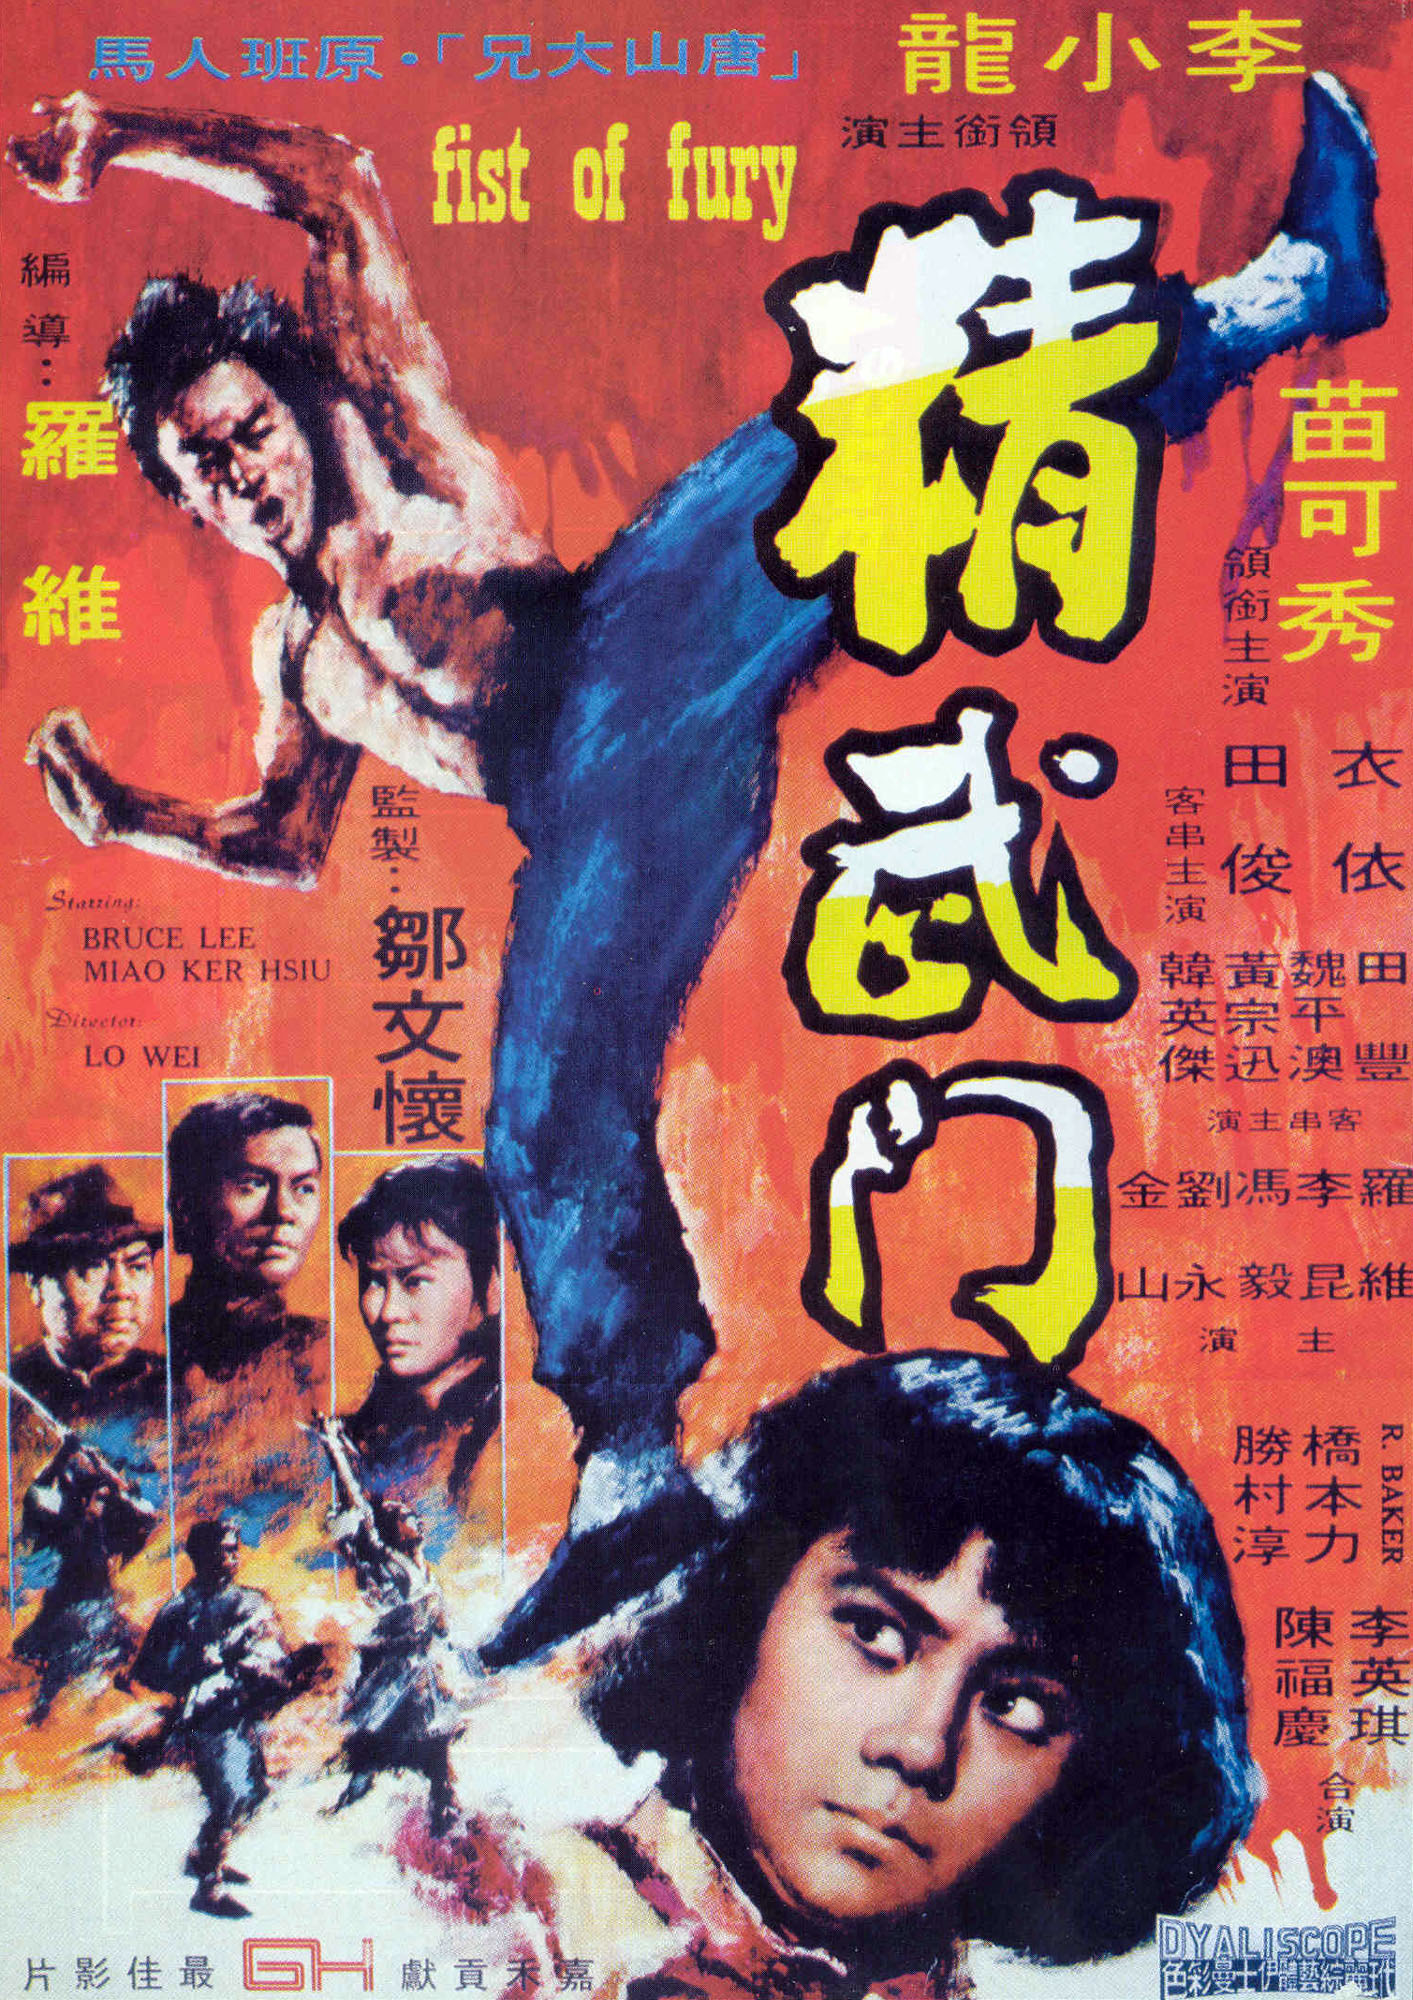 http://mazur51.files.wordpress.com/2009/08/fist_of_fury_poster_06.jpg